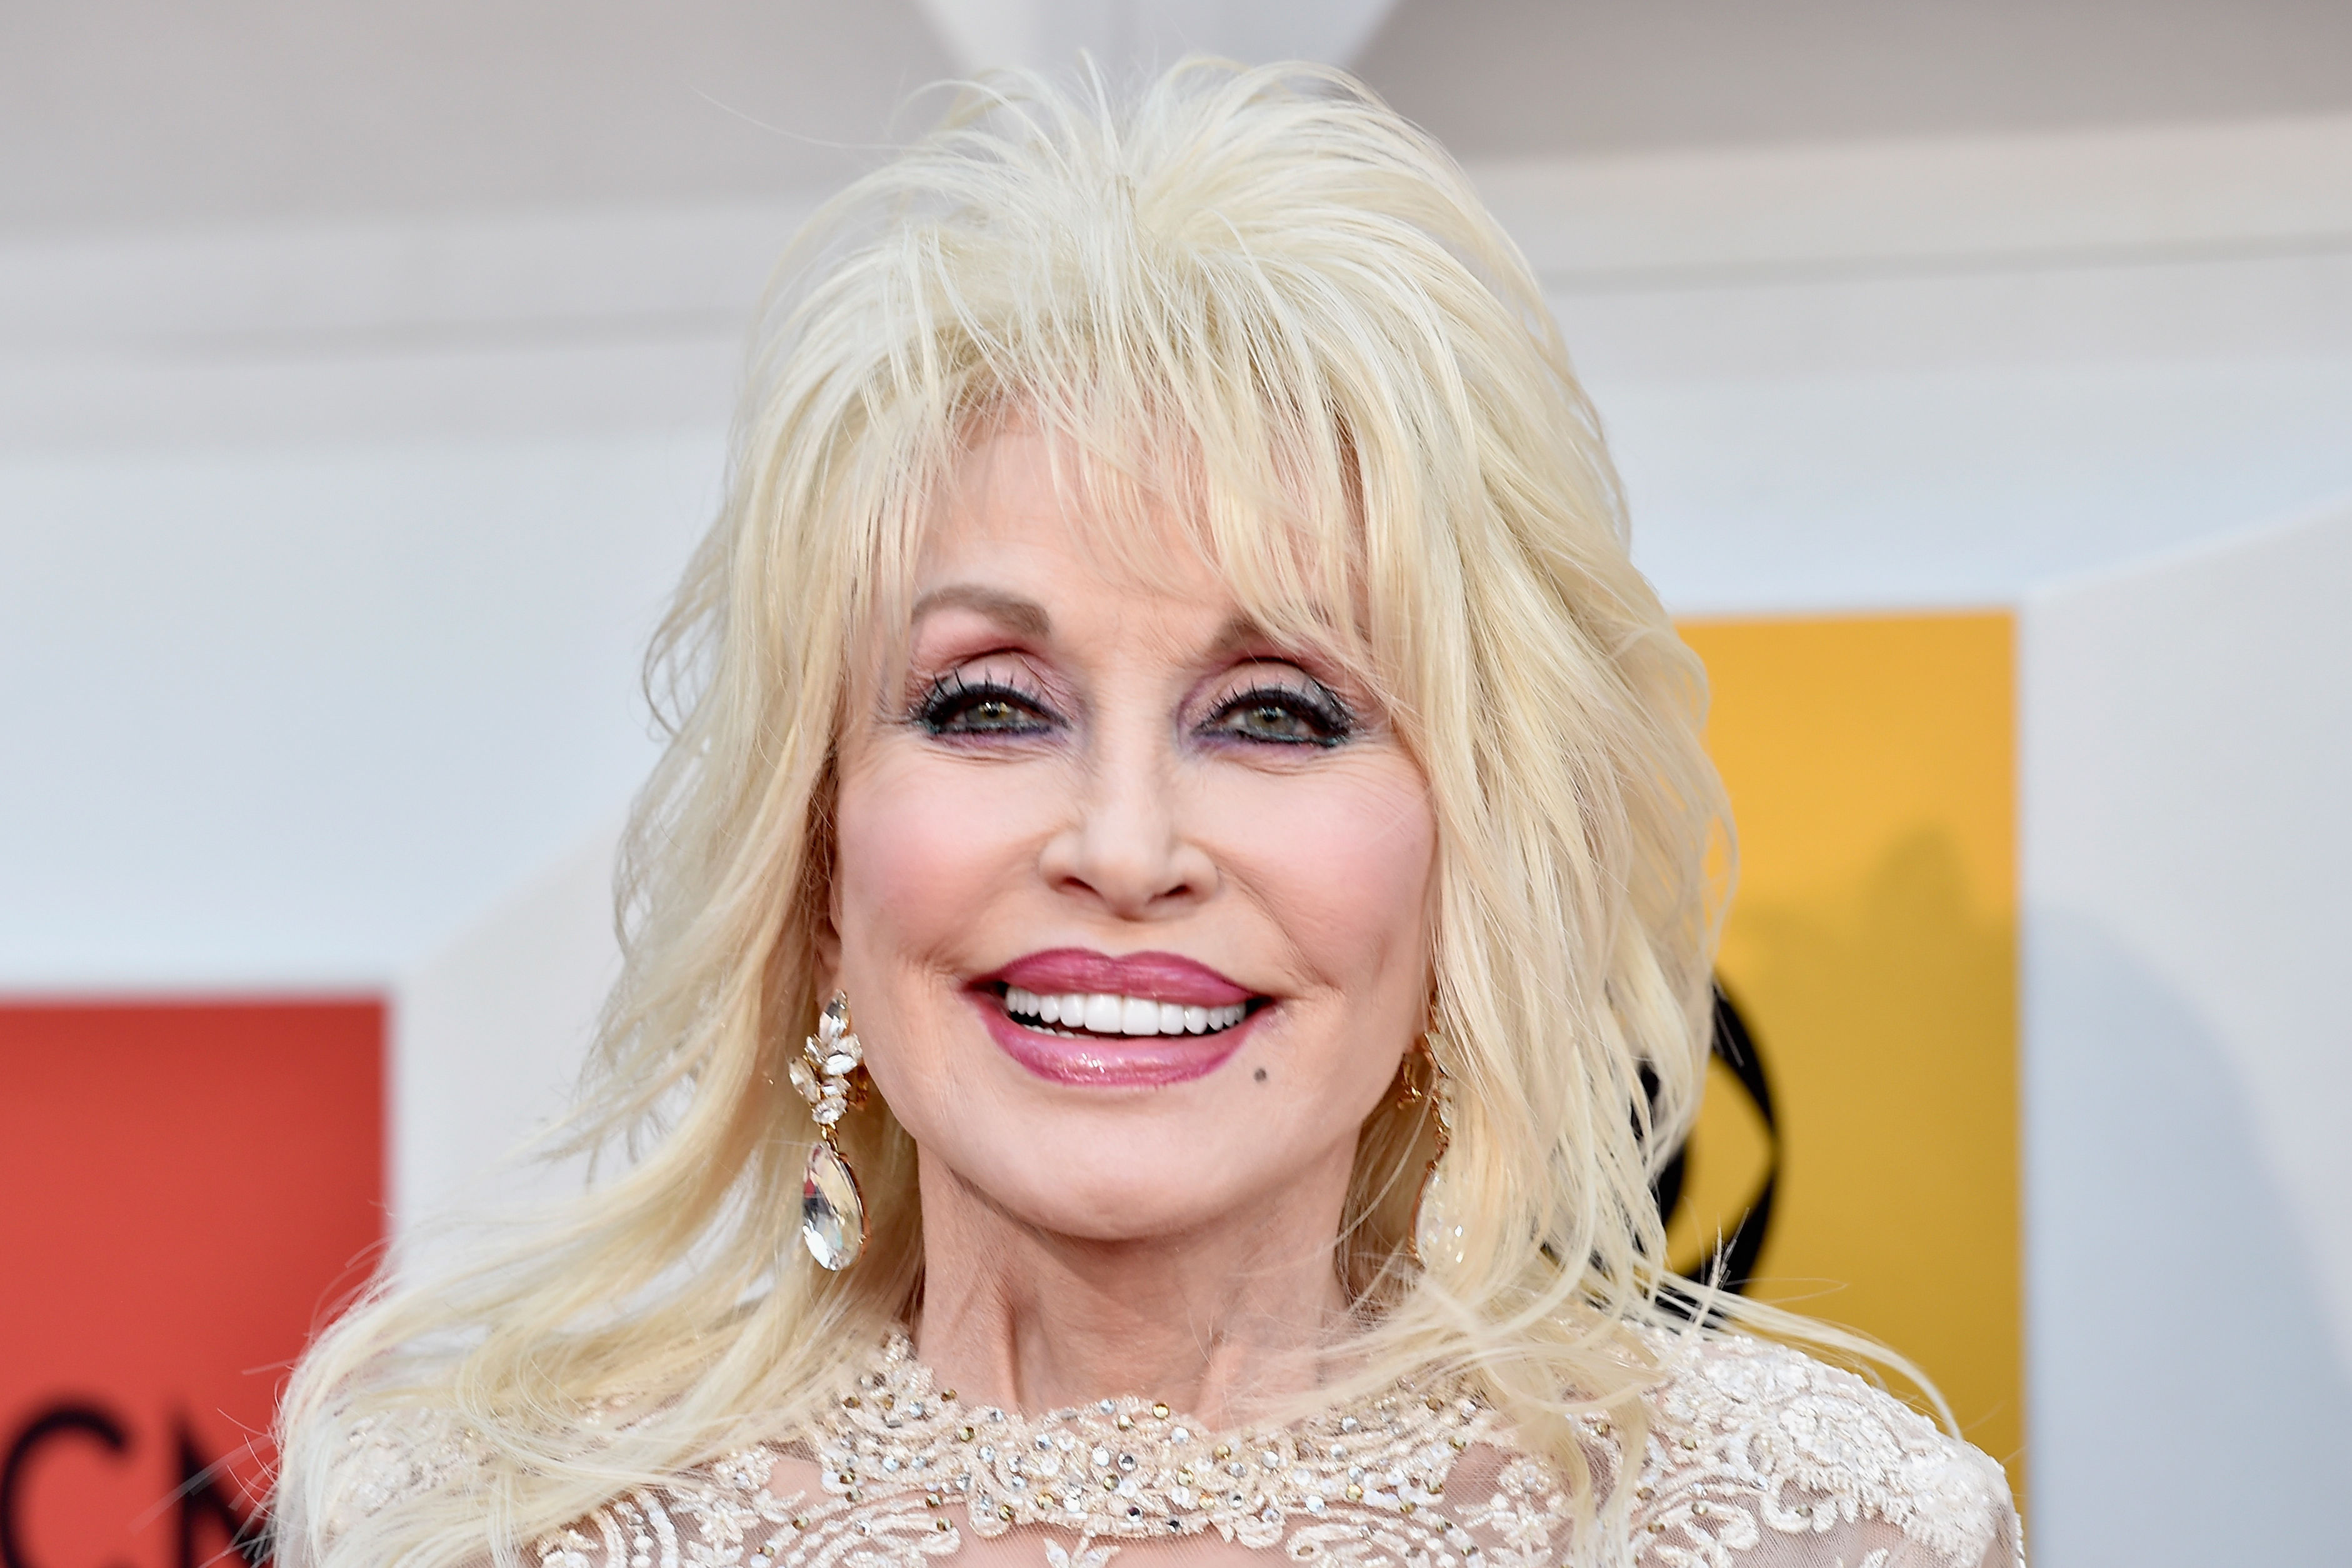 How to Dress Up As Dolly Parton for Halloween, According to Dolly Parton